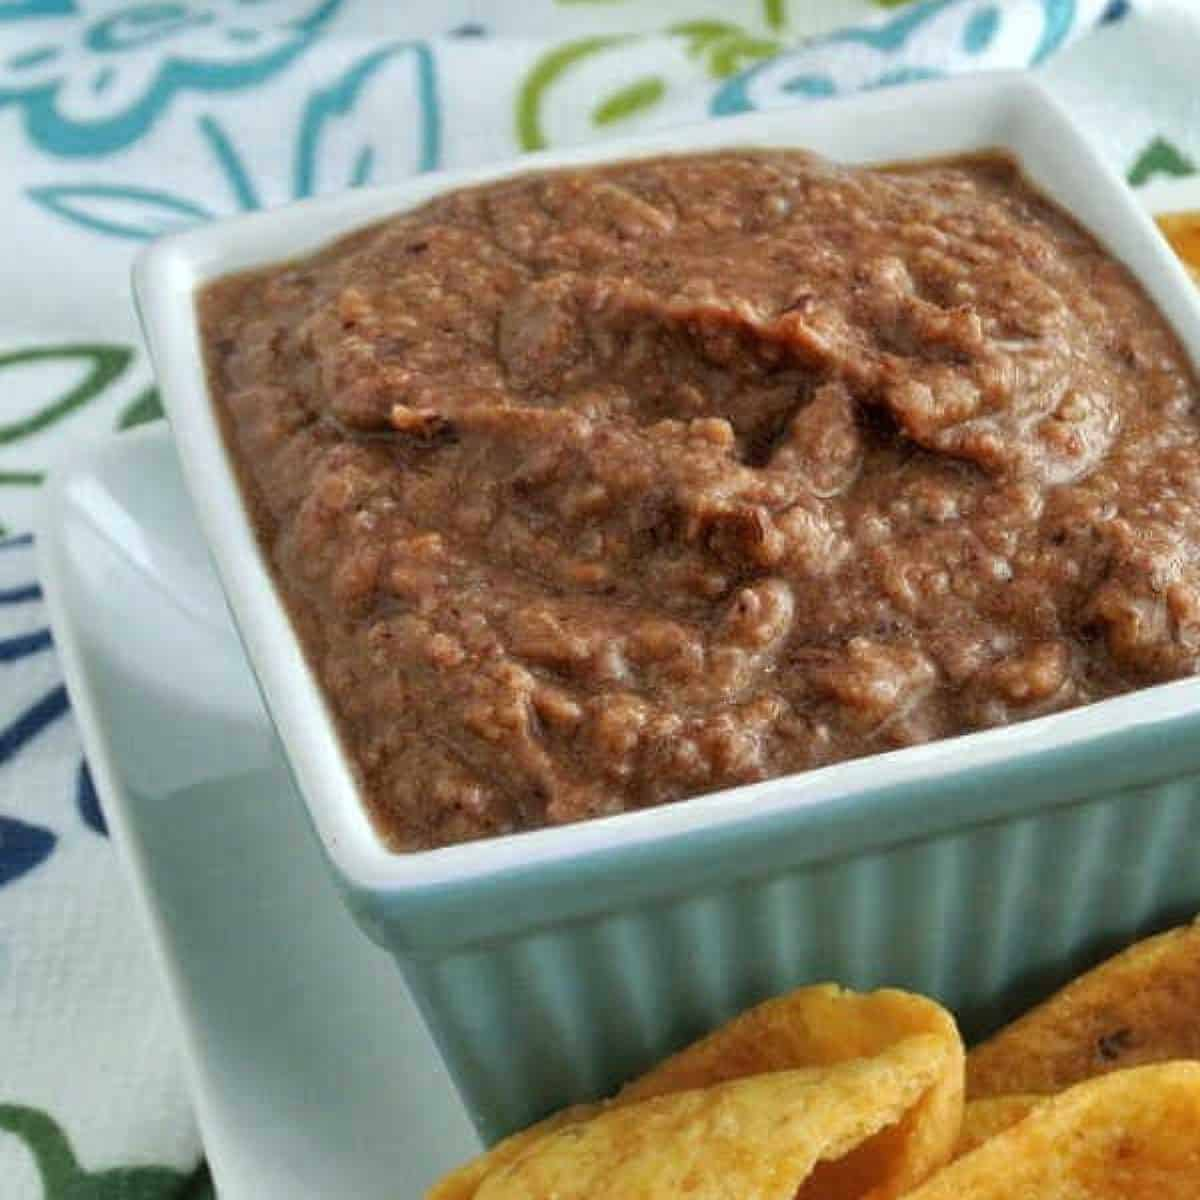 Black bean dip in a square bowl with chips on the side.